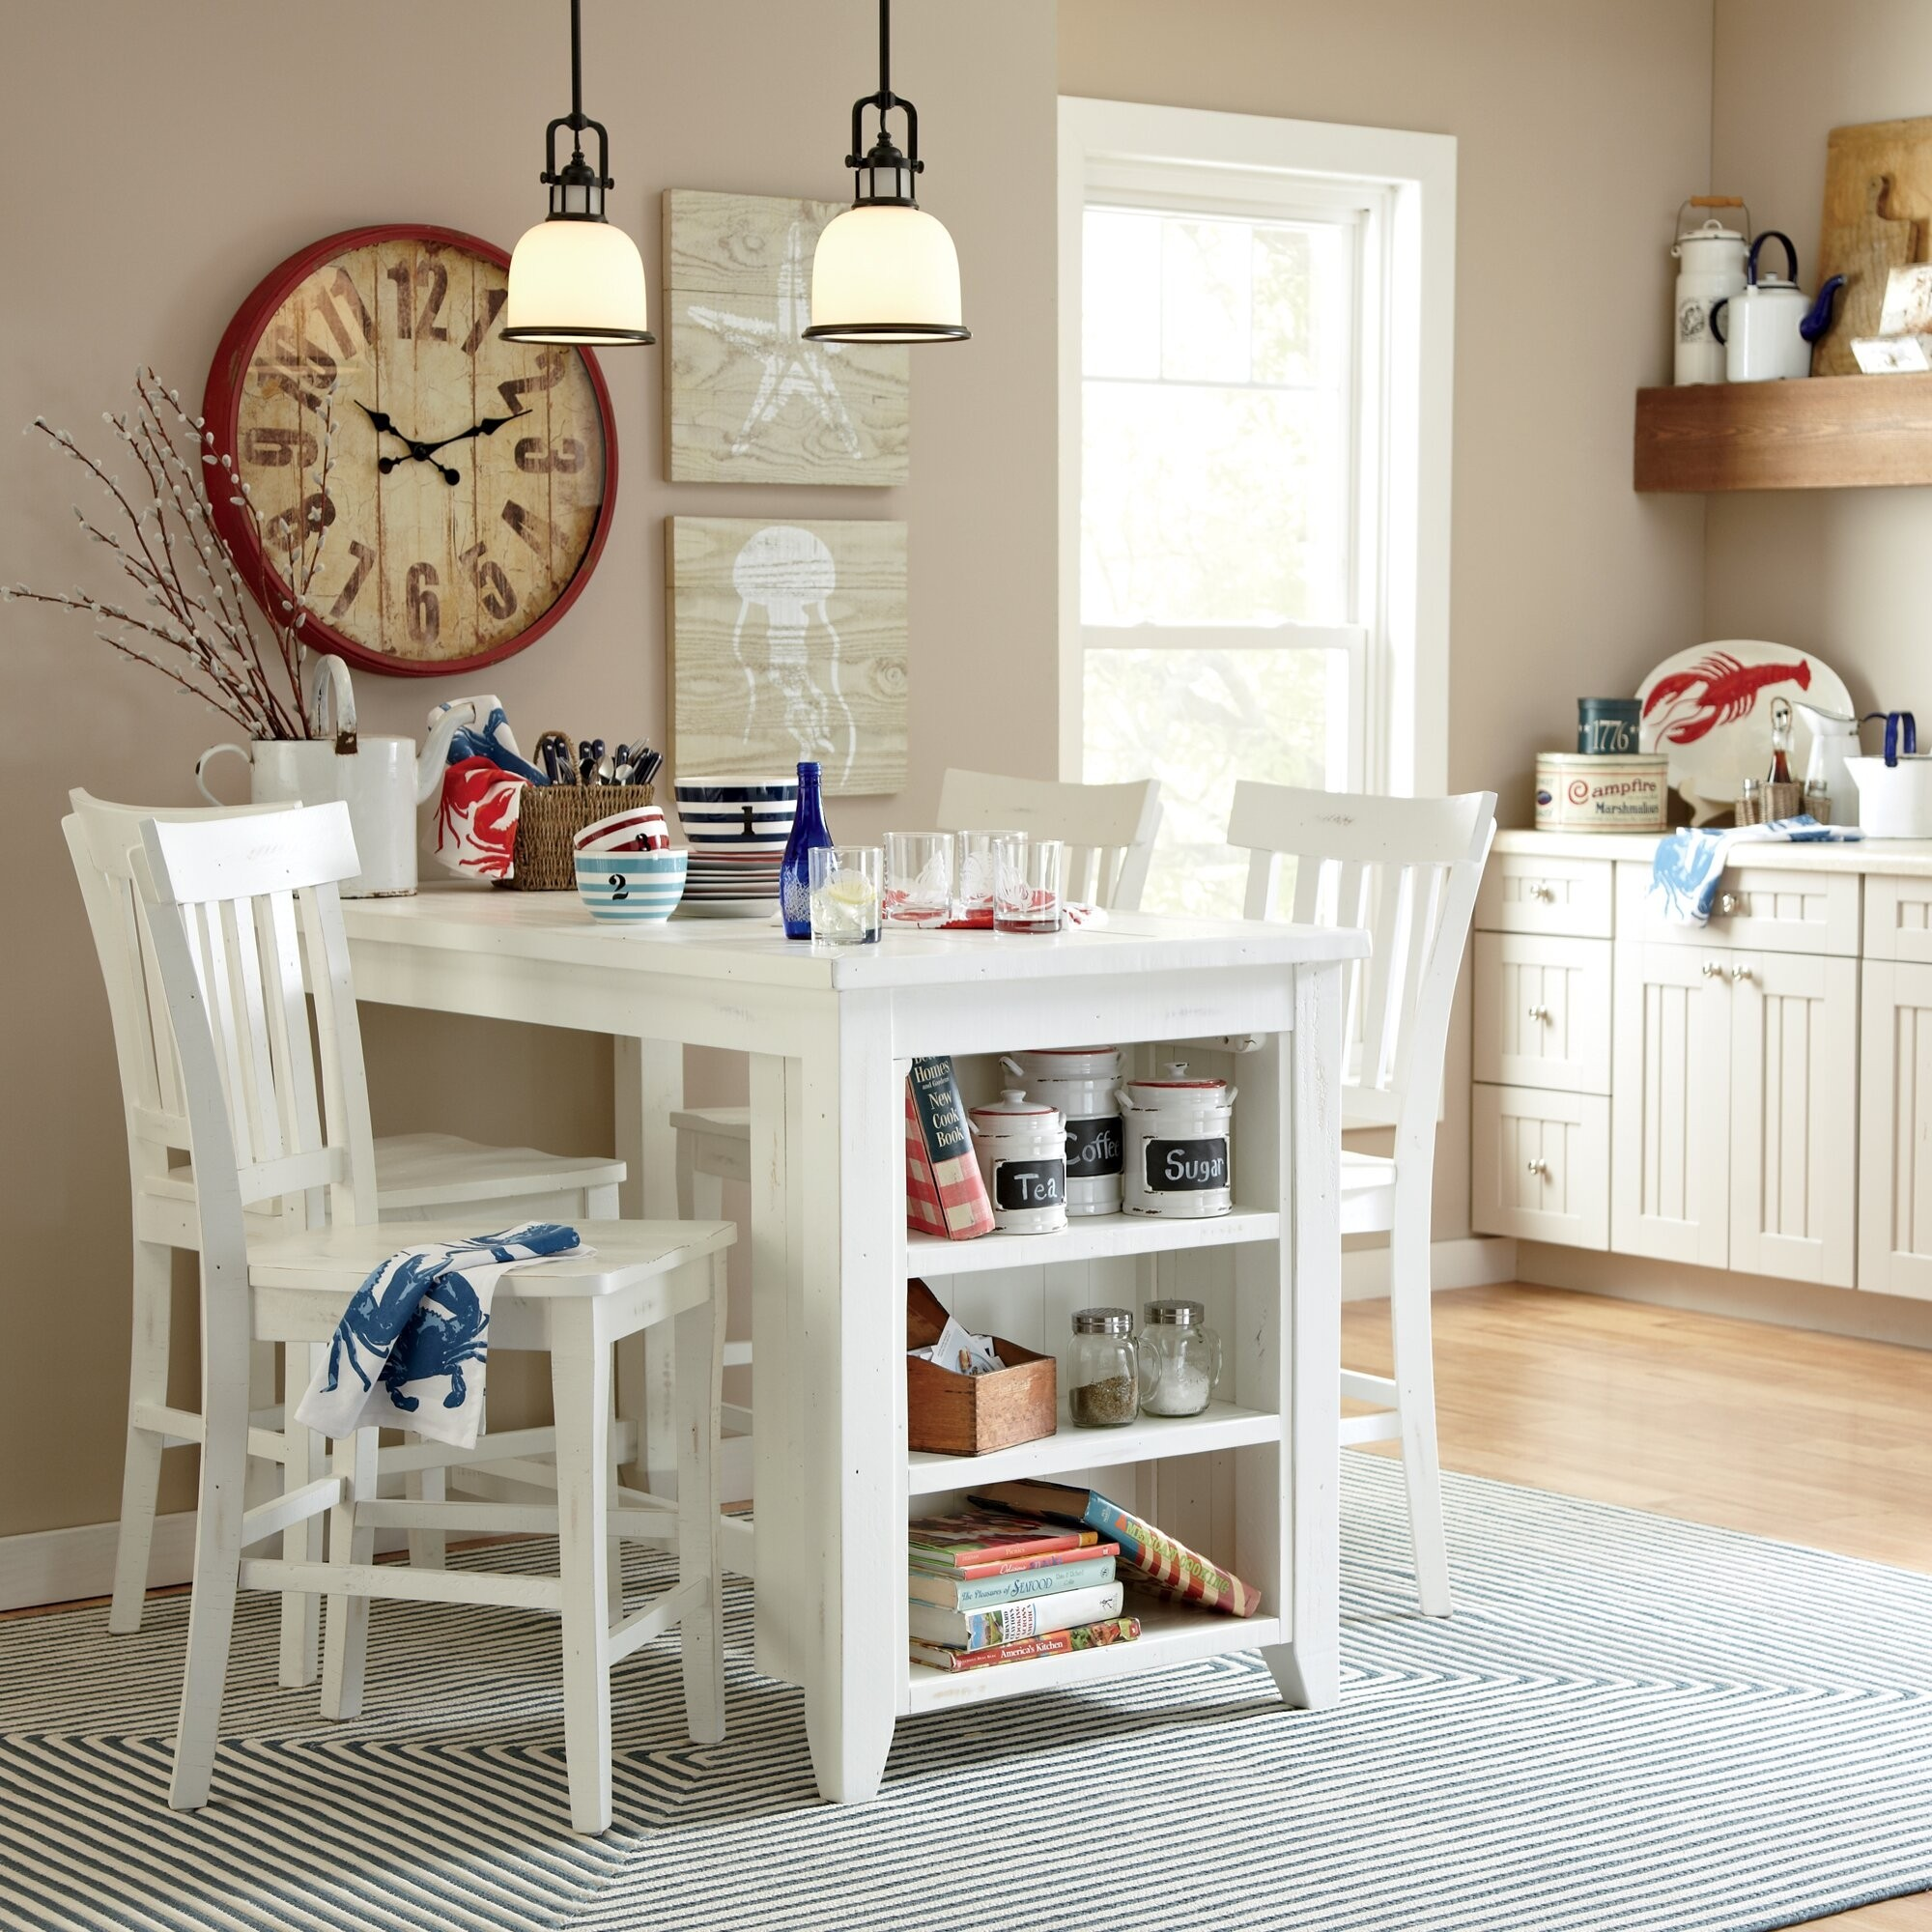 Solid Pine Wood Breakfast Bar & Kitchen Table With Storage Underneath - Ideas on Foter